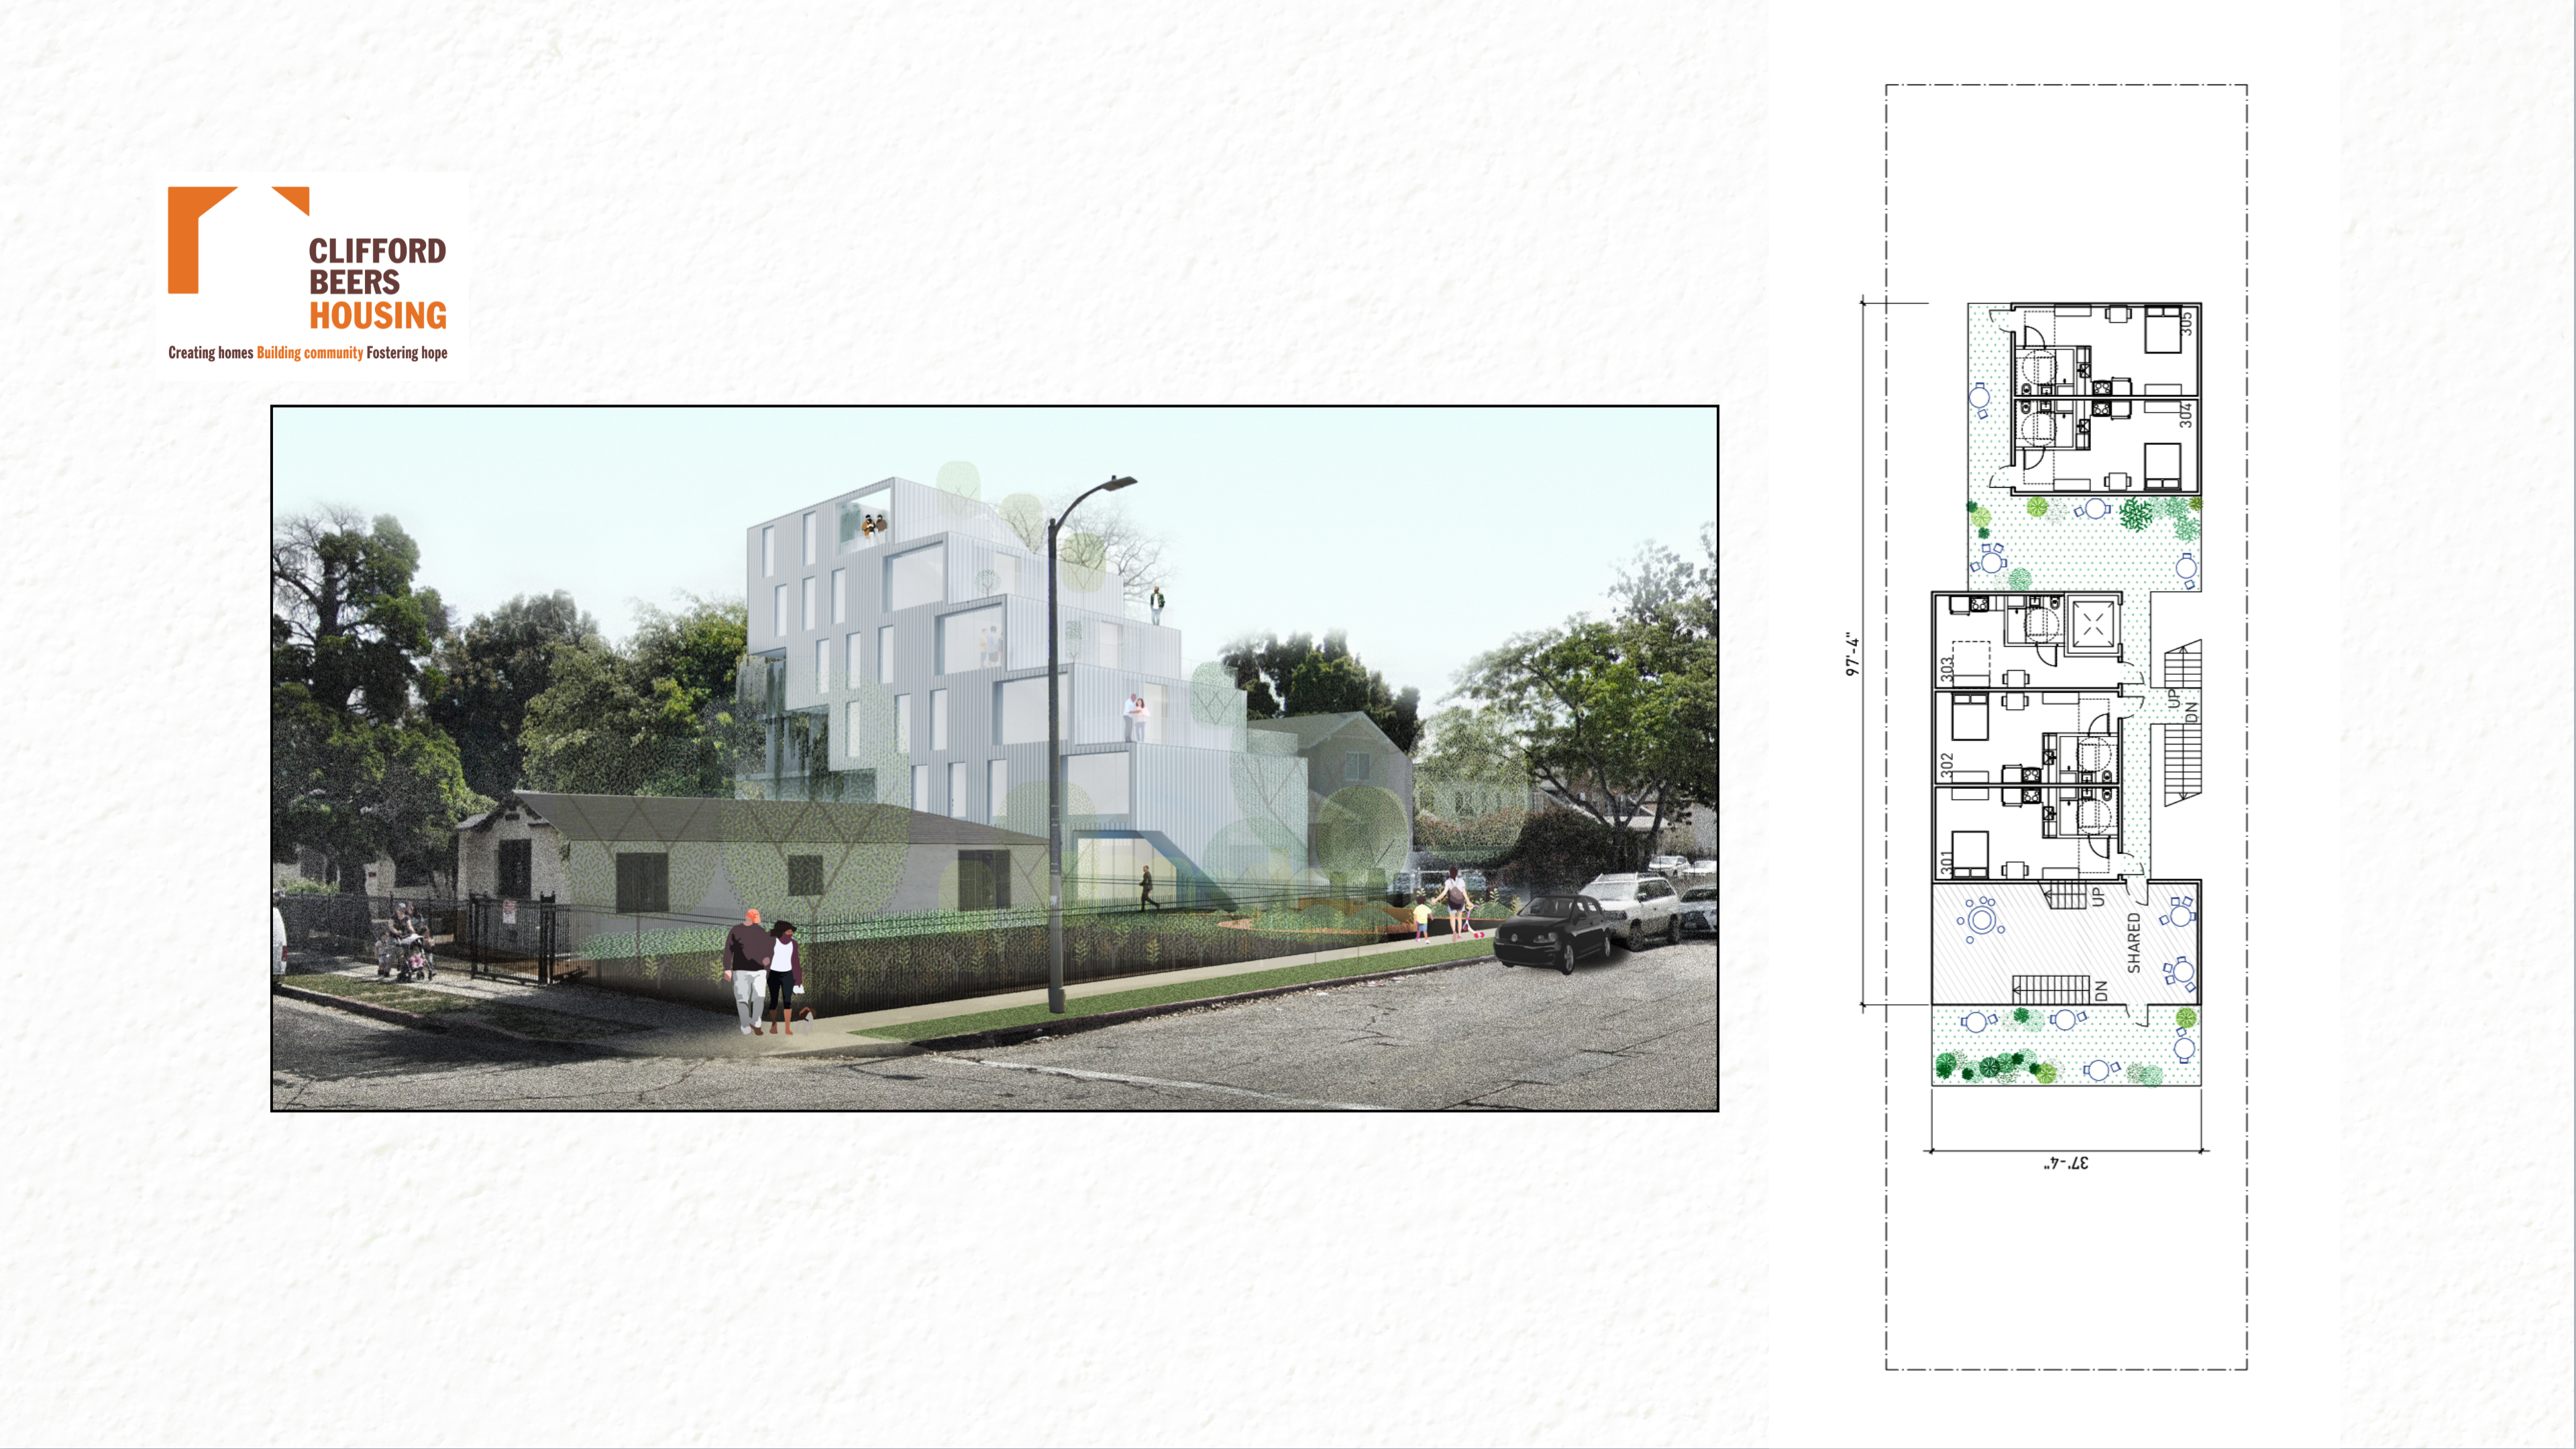 Clifford Beers - prefabricated modular housing concept